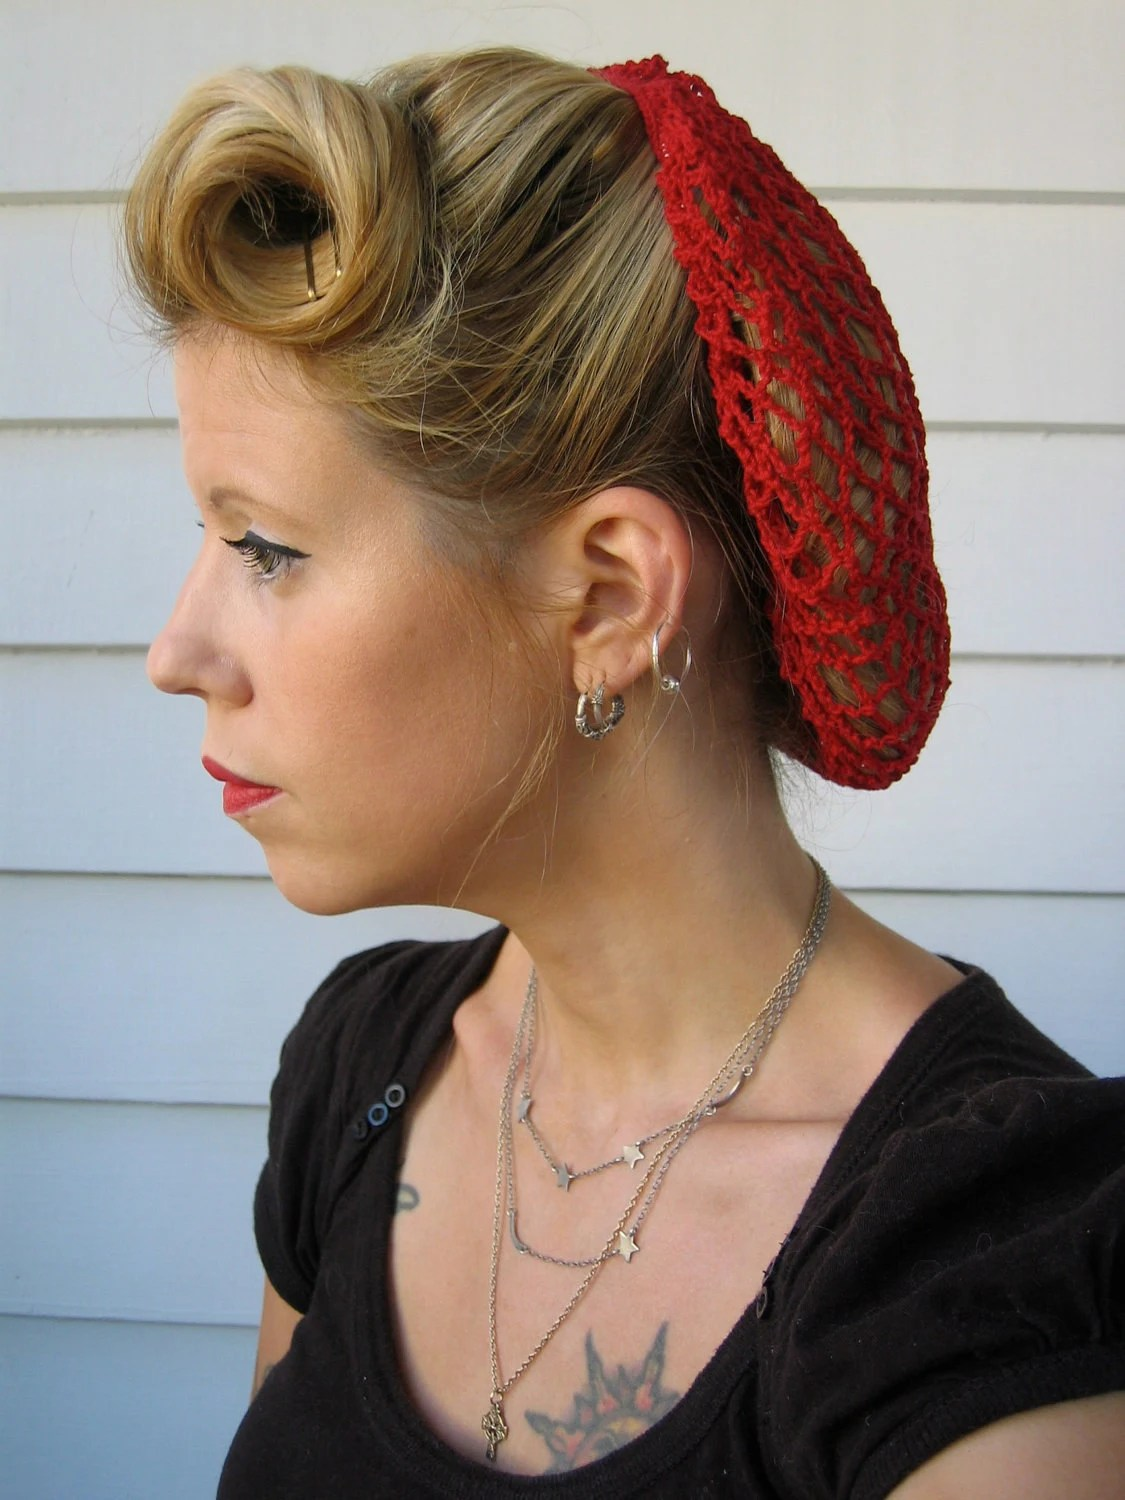 Items Similar To Retro 1940s Style Hair Snood On Etsy